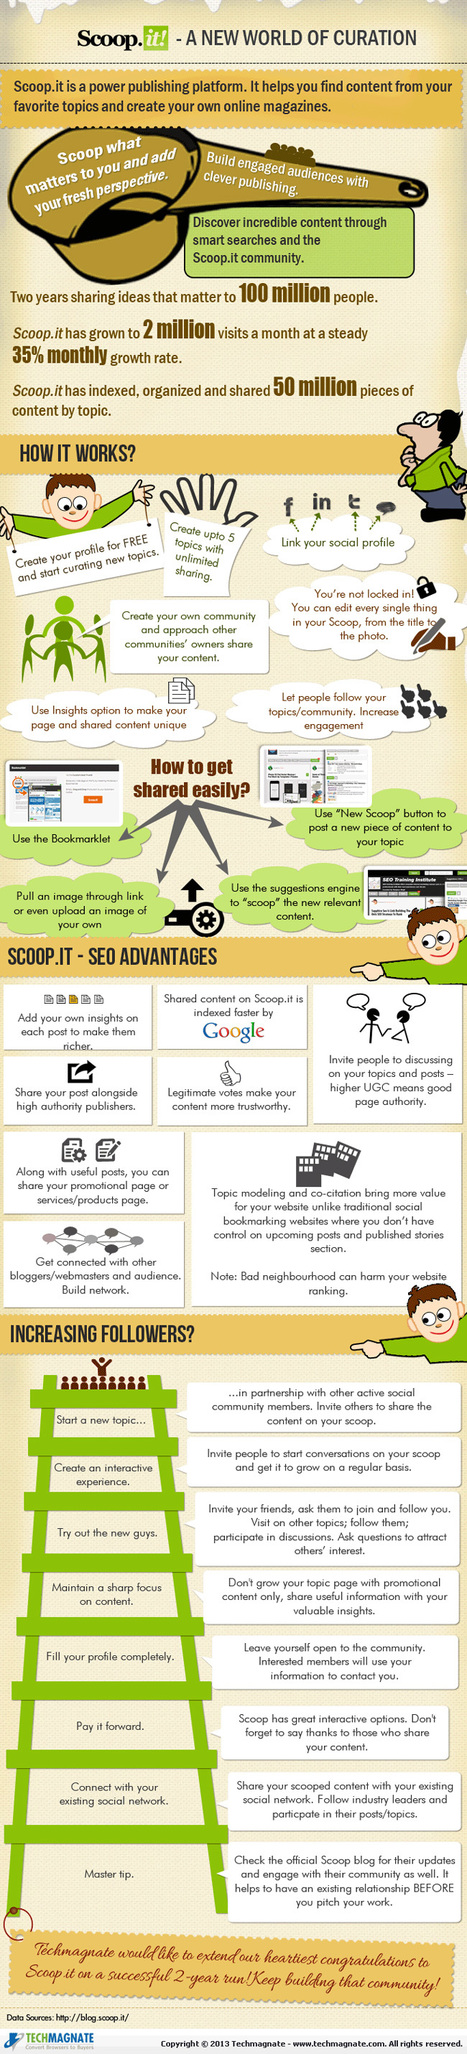 Scoop.It for SEO – A New World of Curation [Infographic] | An Eye on New Media | Scoop.it